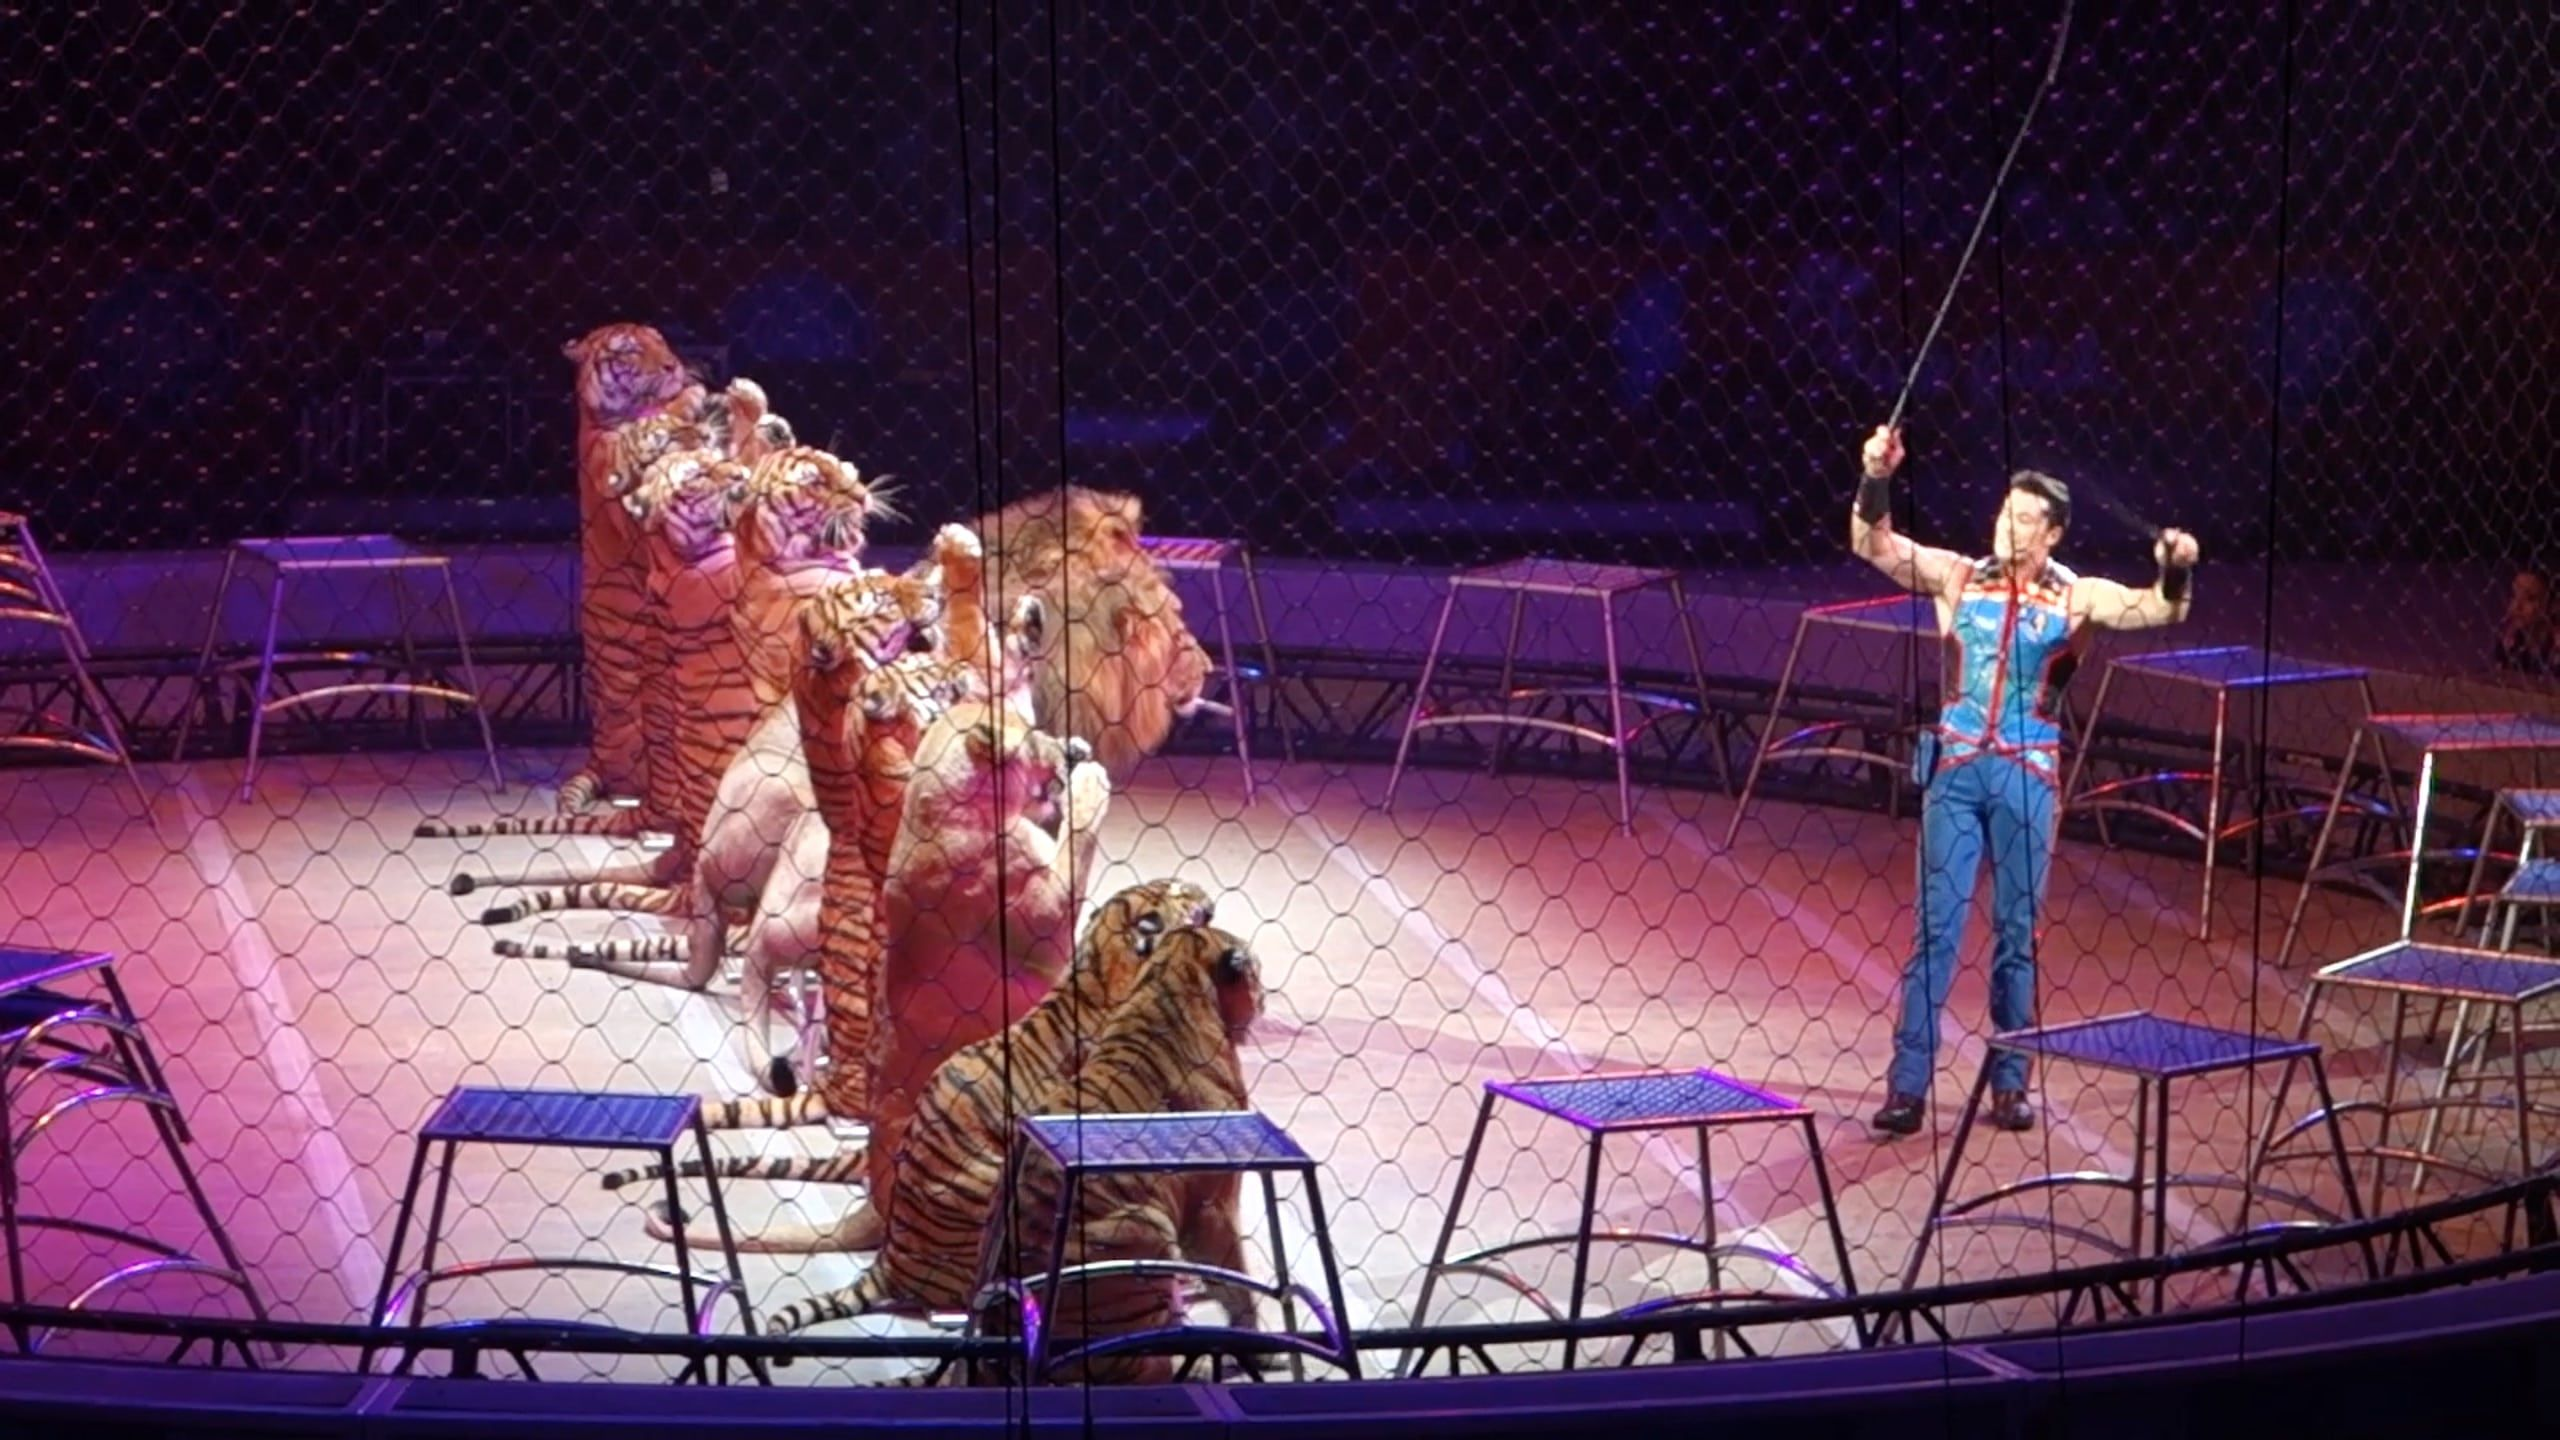 Tigers and lions perform at Ringling Bros. circus